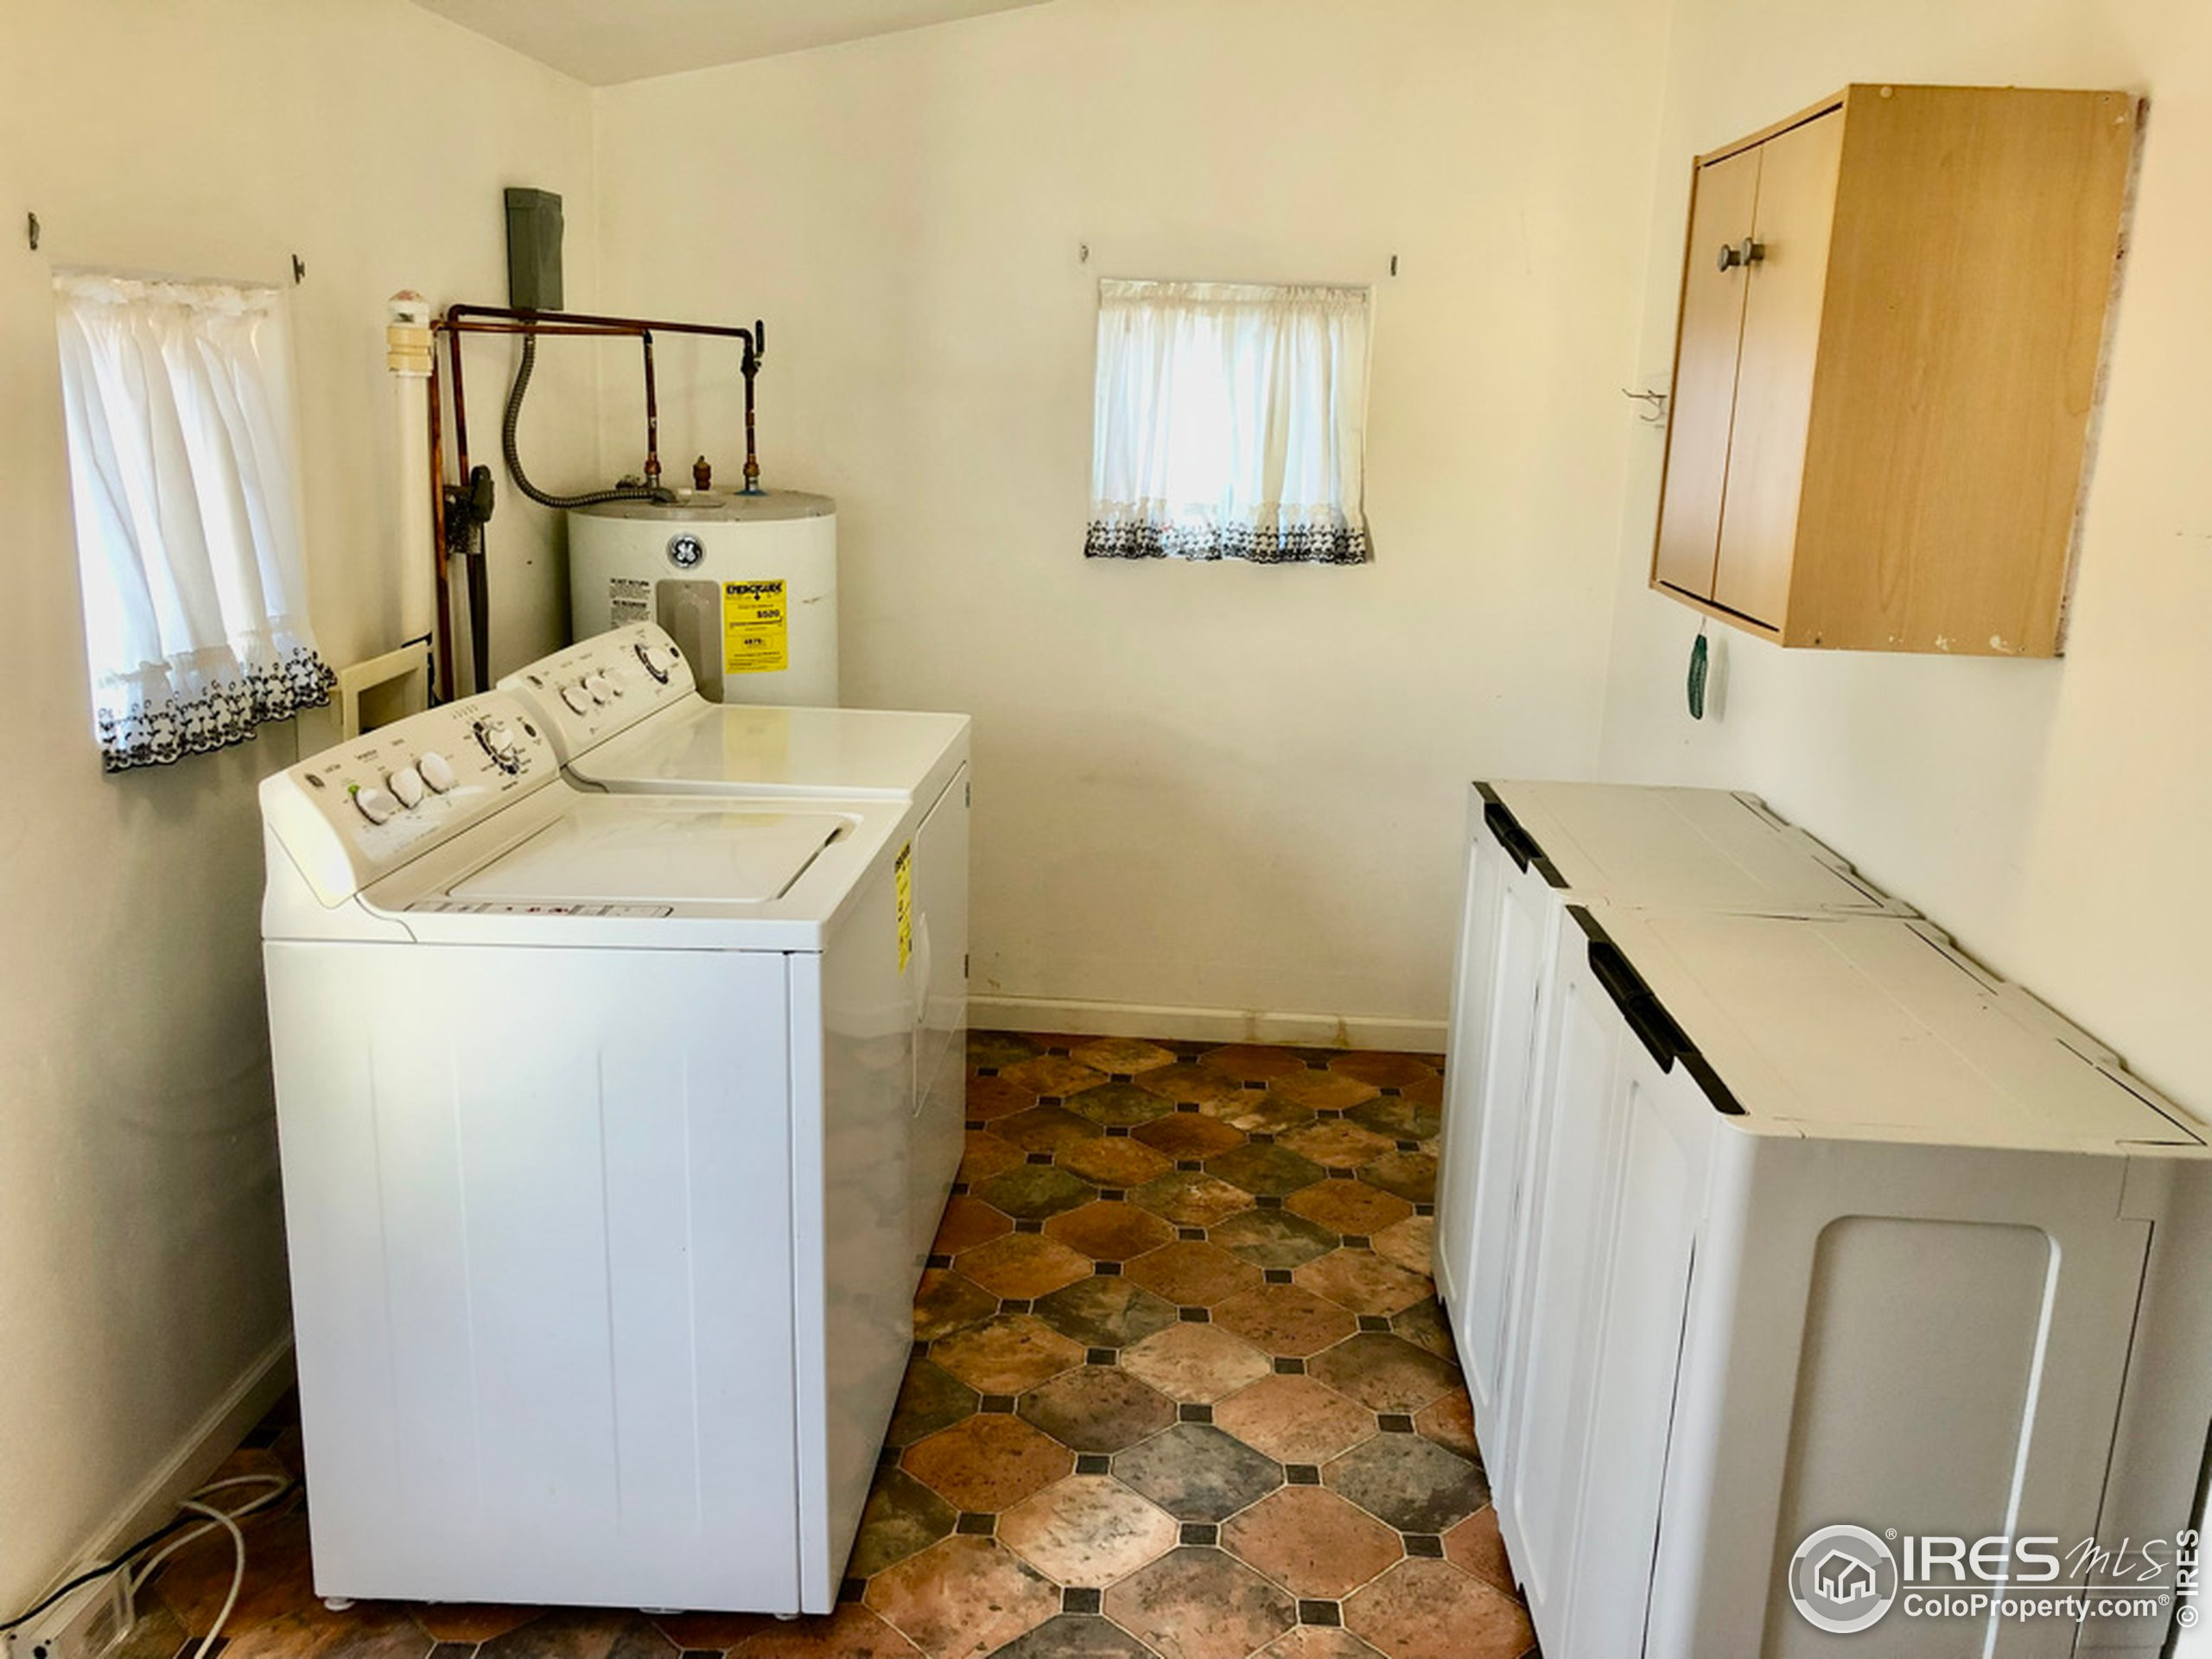 Utility Room, Washer & Dryer Included